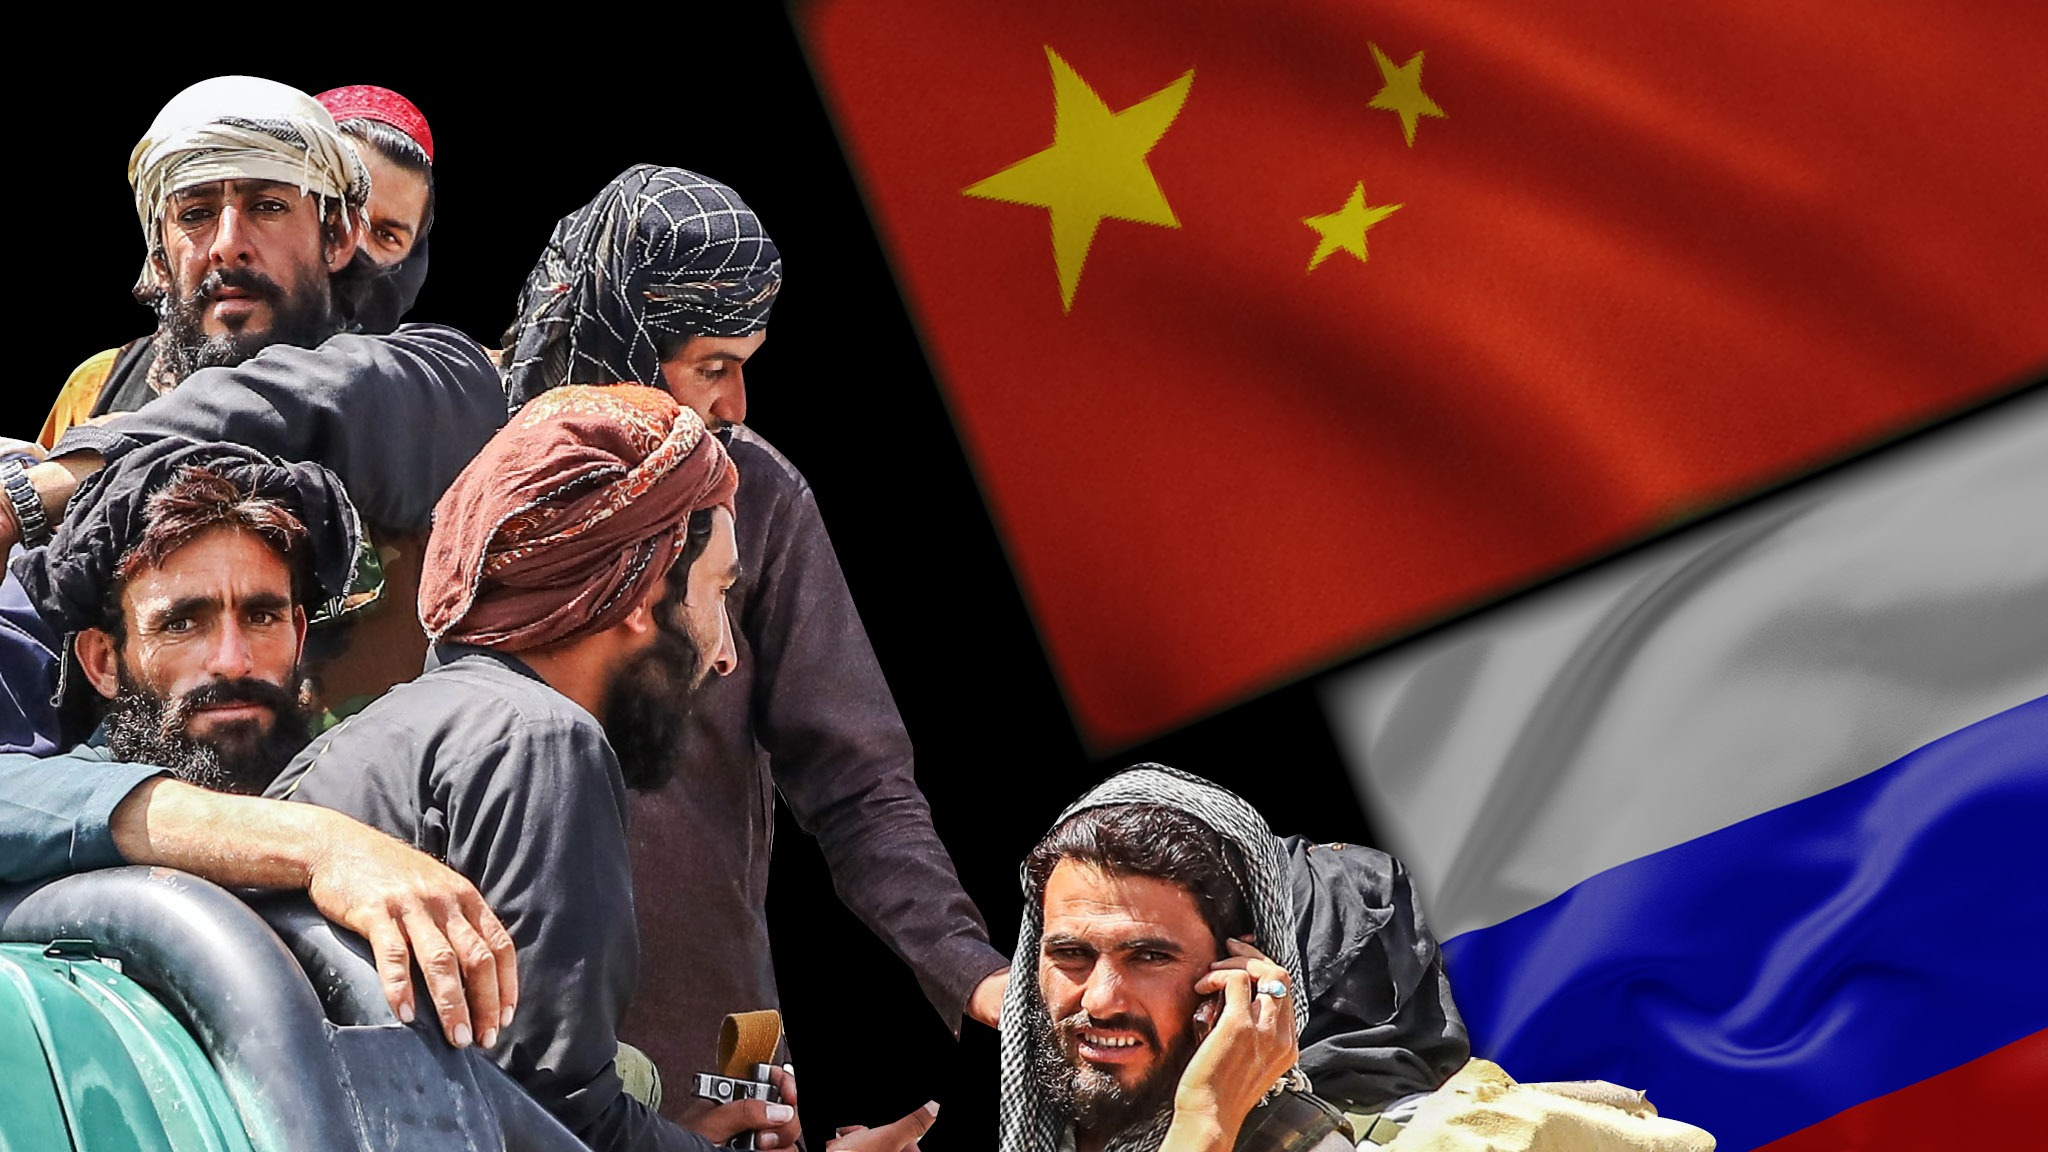 Mat Afghanistan, quoc gia Trung A nao se la